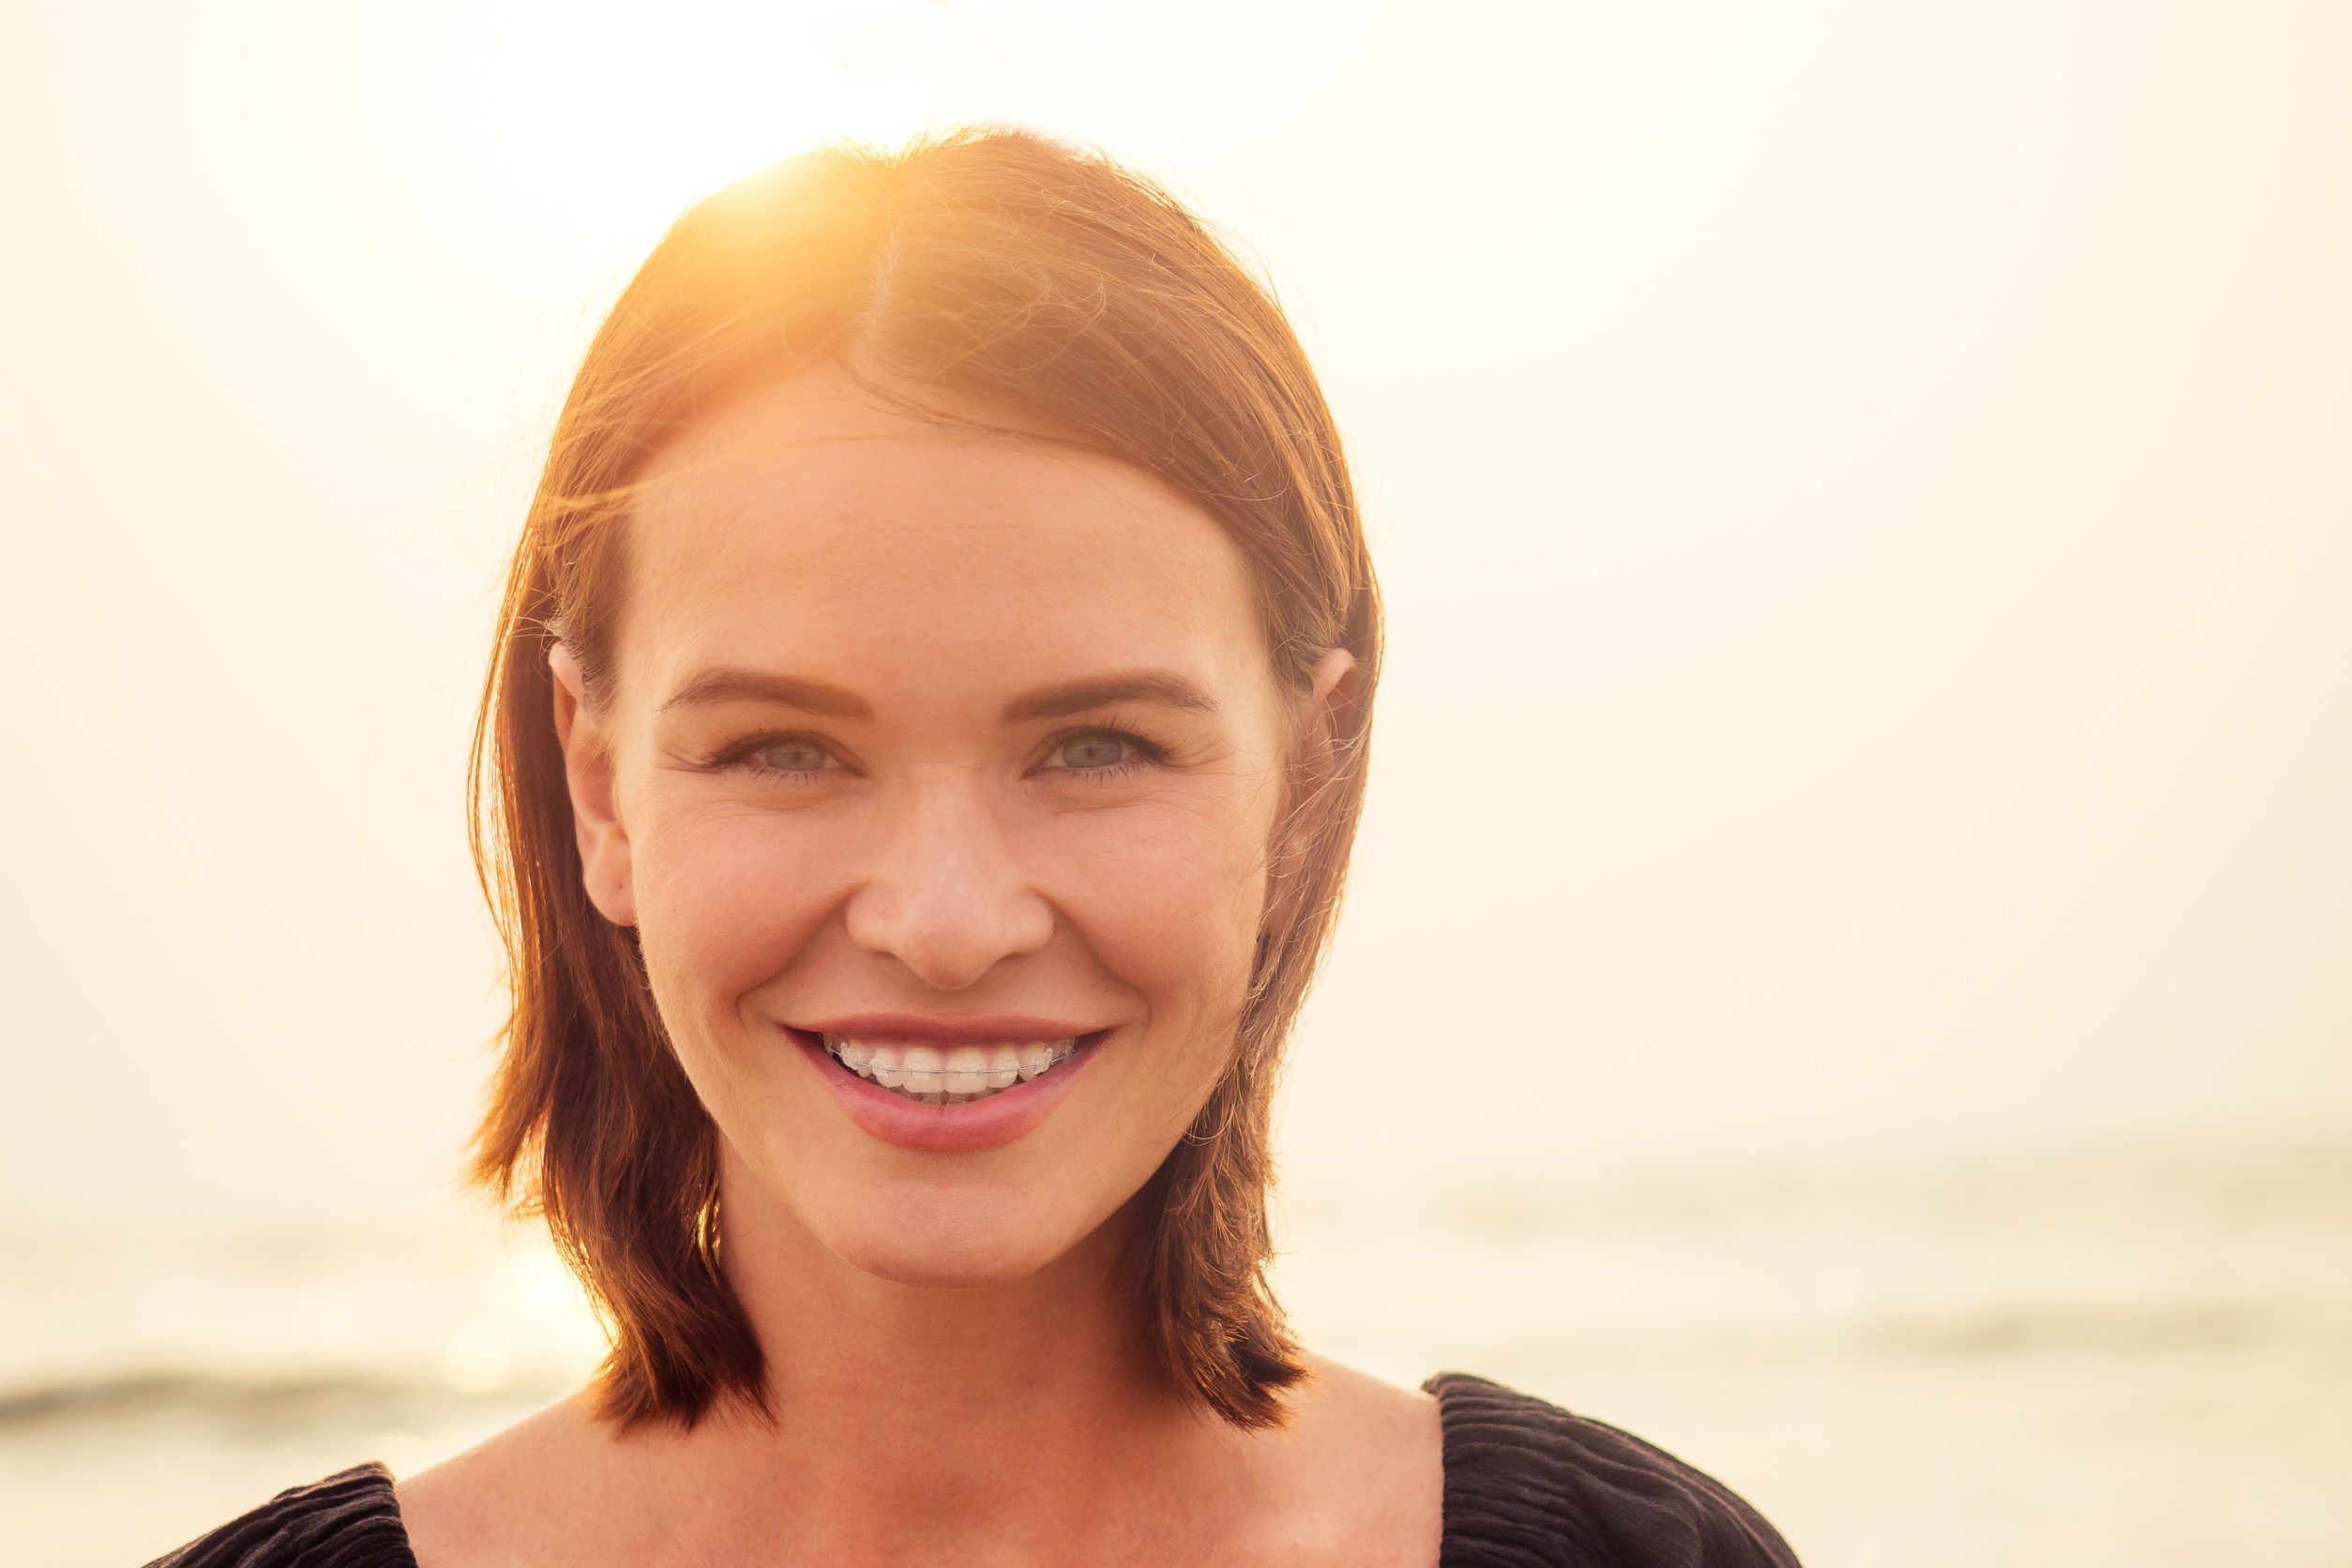 woman, 30-35 years old smiling toothy smile with braces on sea ocean beach background.spf and sunscreen.